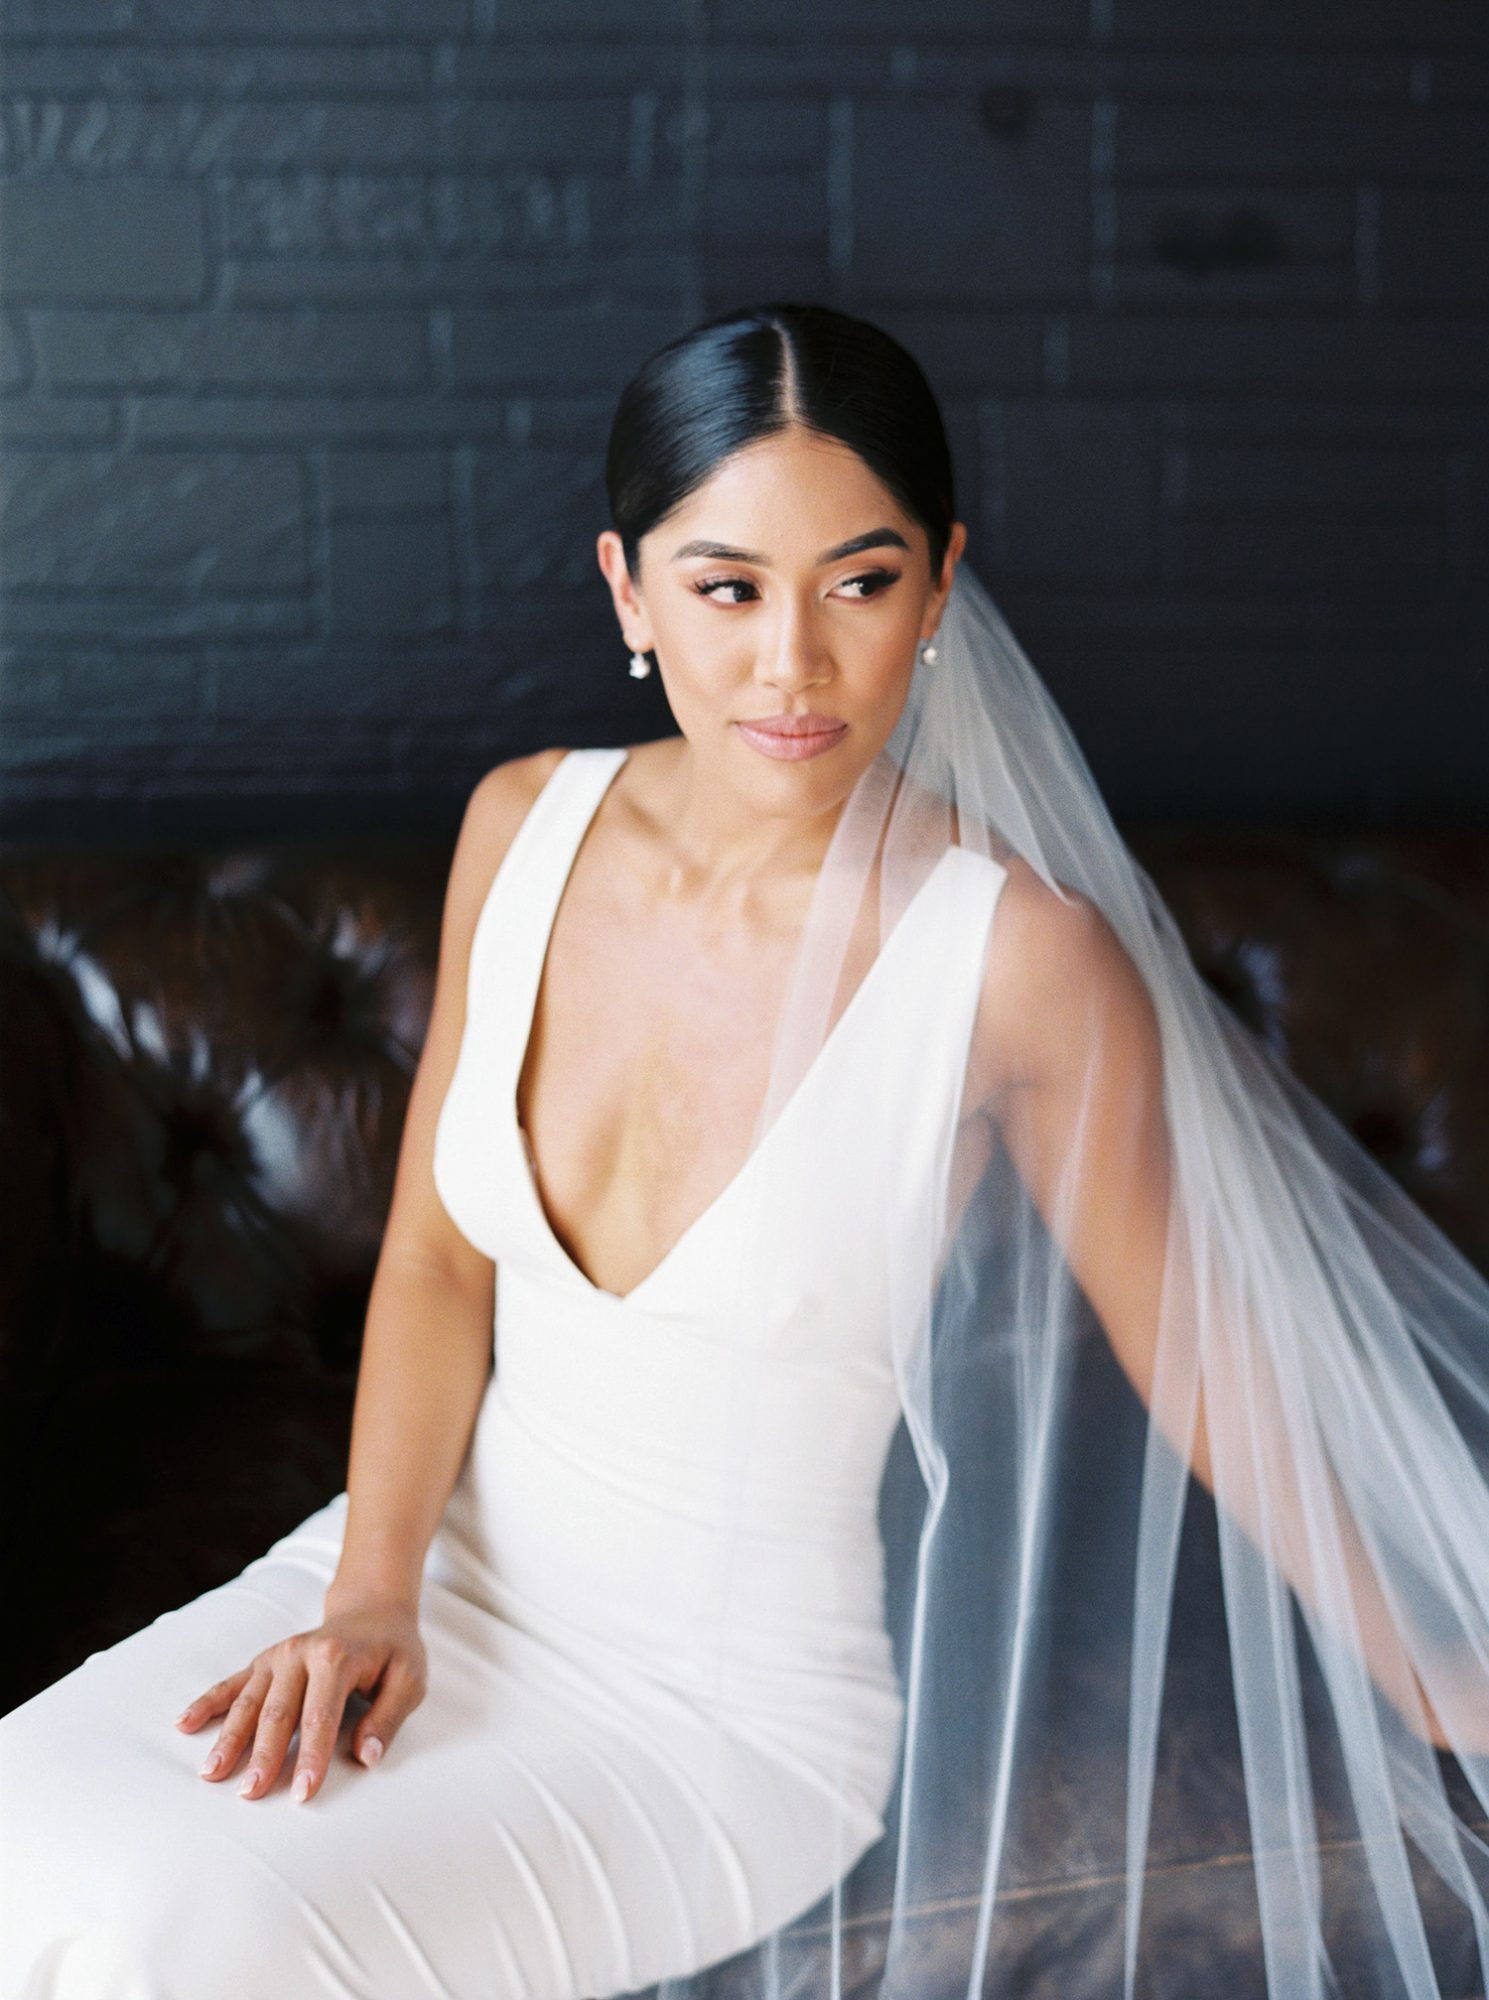 dawn jordan wedding bride dress veil